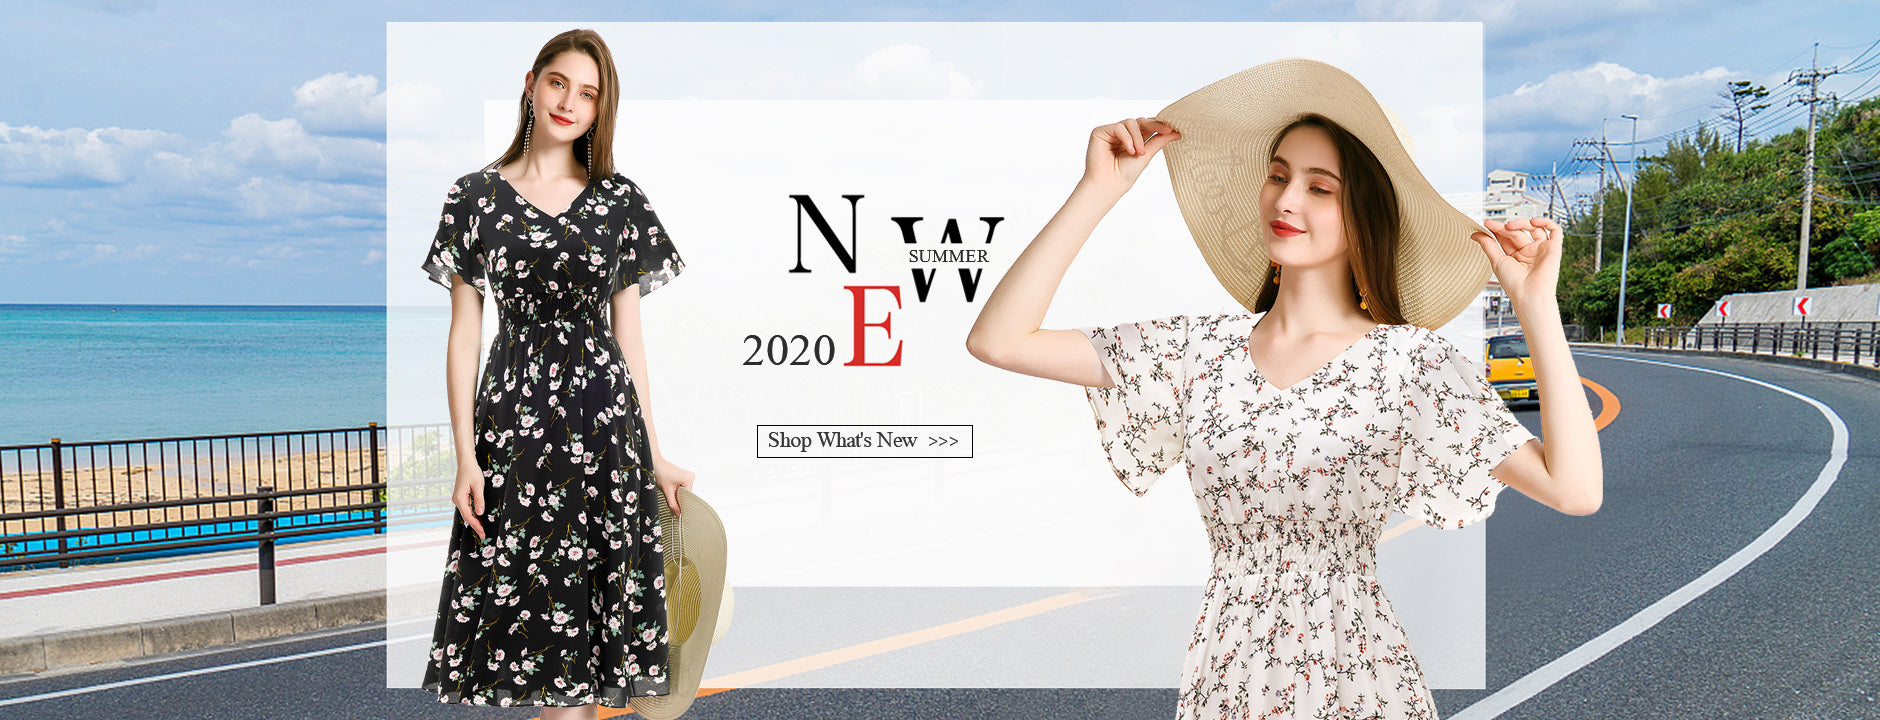 Floral Summer Dresses 2020 Casual Dresses Women's Fashion Boho Style | Gardenwed